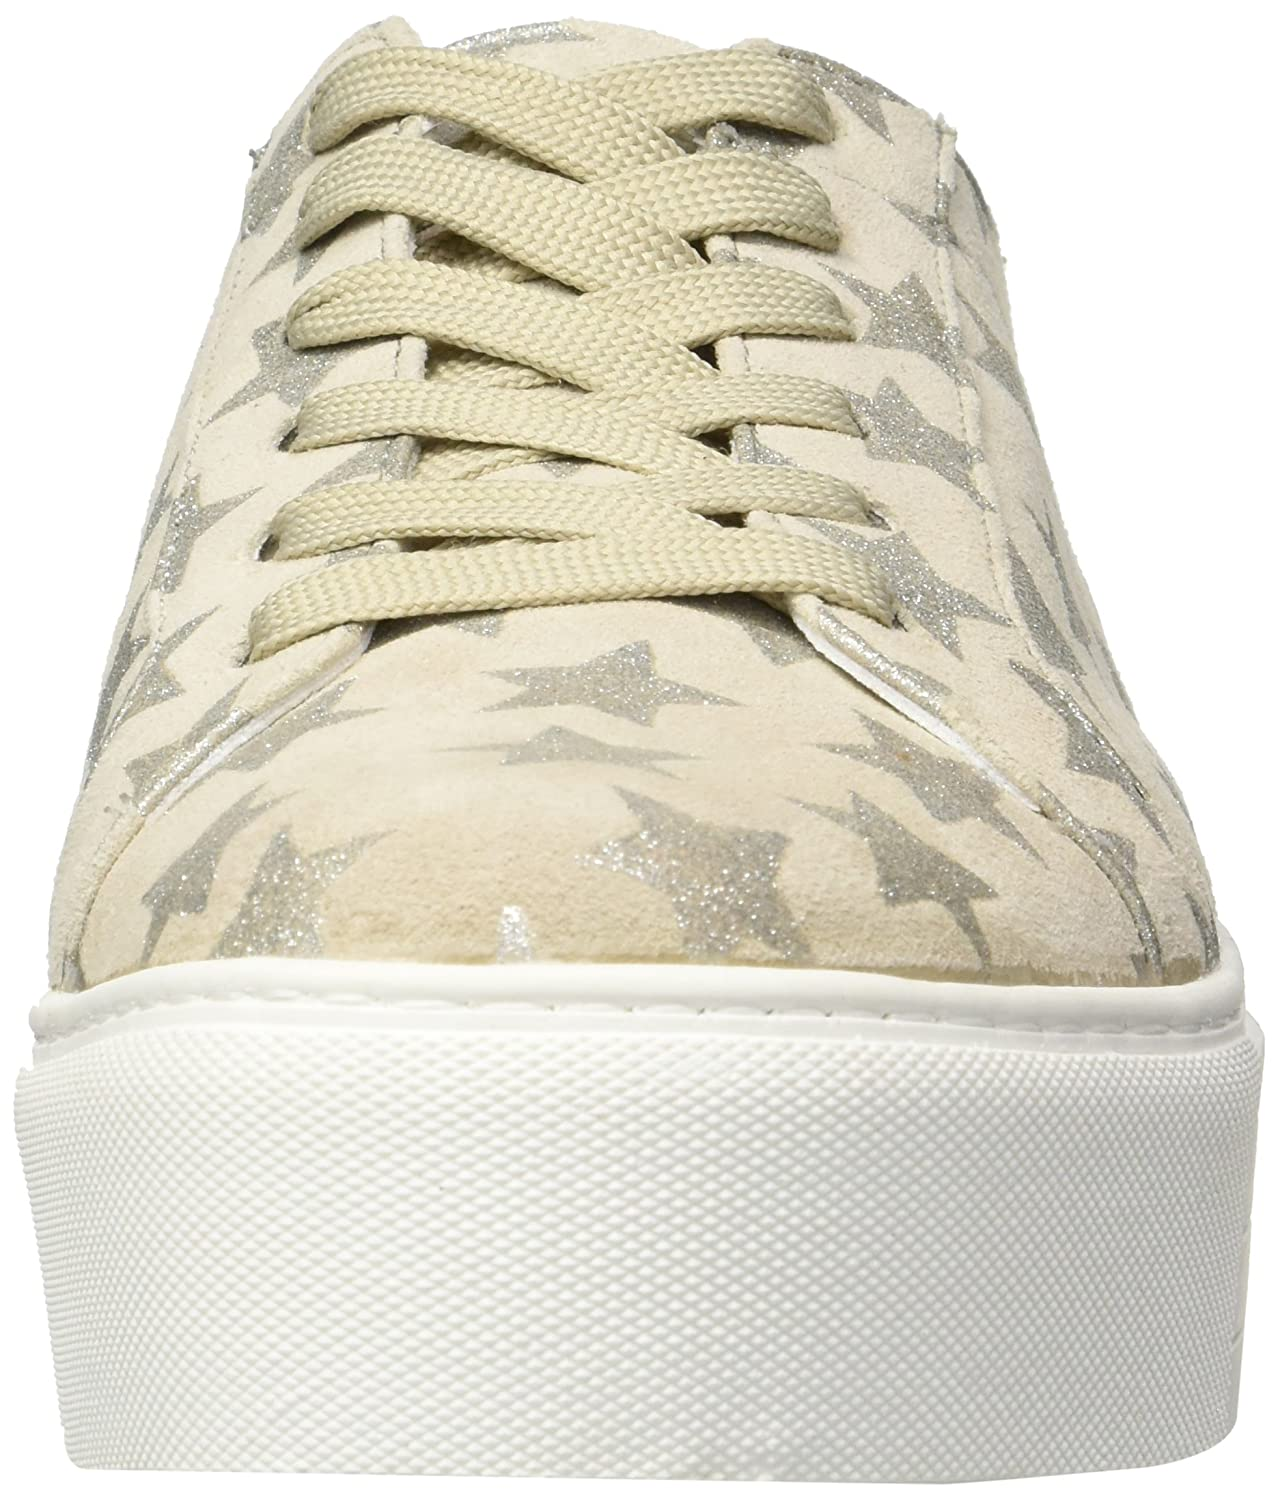 ae355ea99615 ... Kenneth Cole New New New York Women s Abbey Platform Lace-up Techni-Cole  Sneaker ...